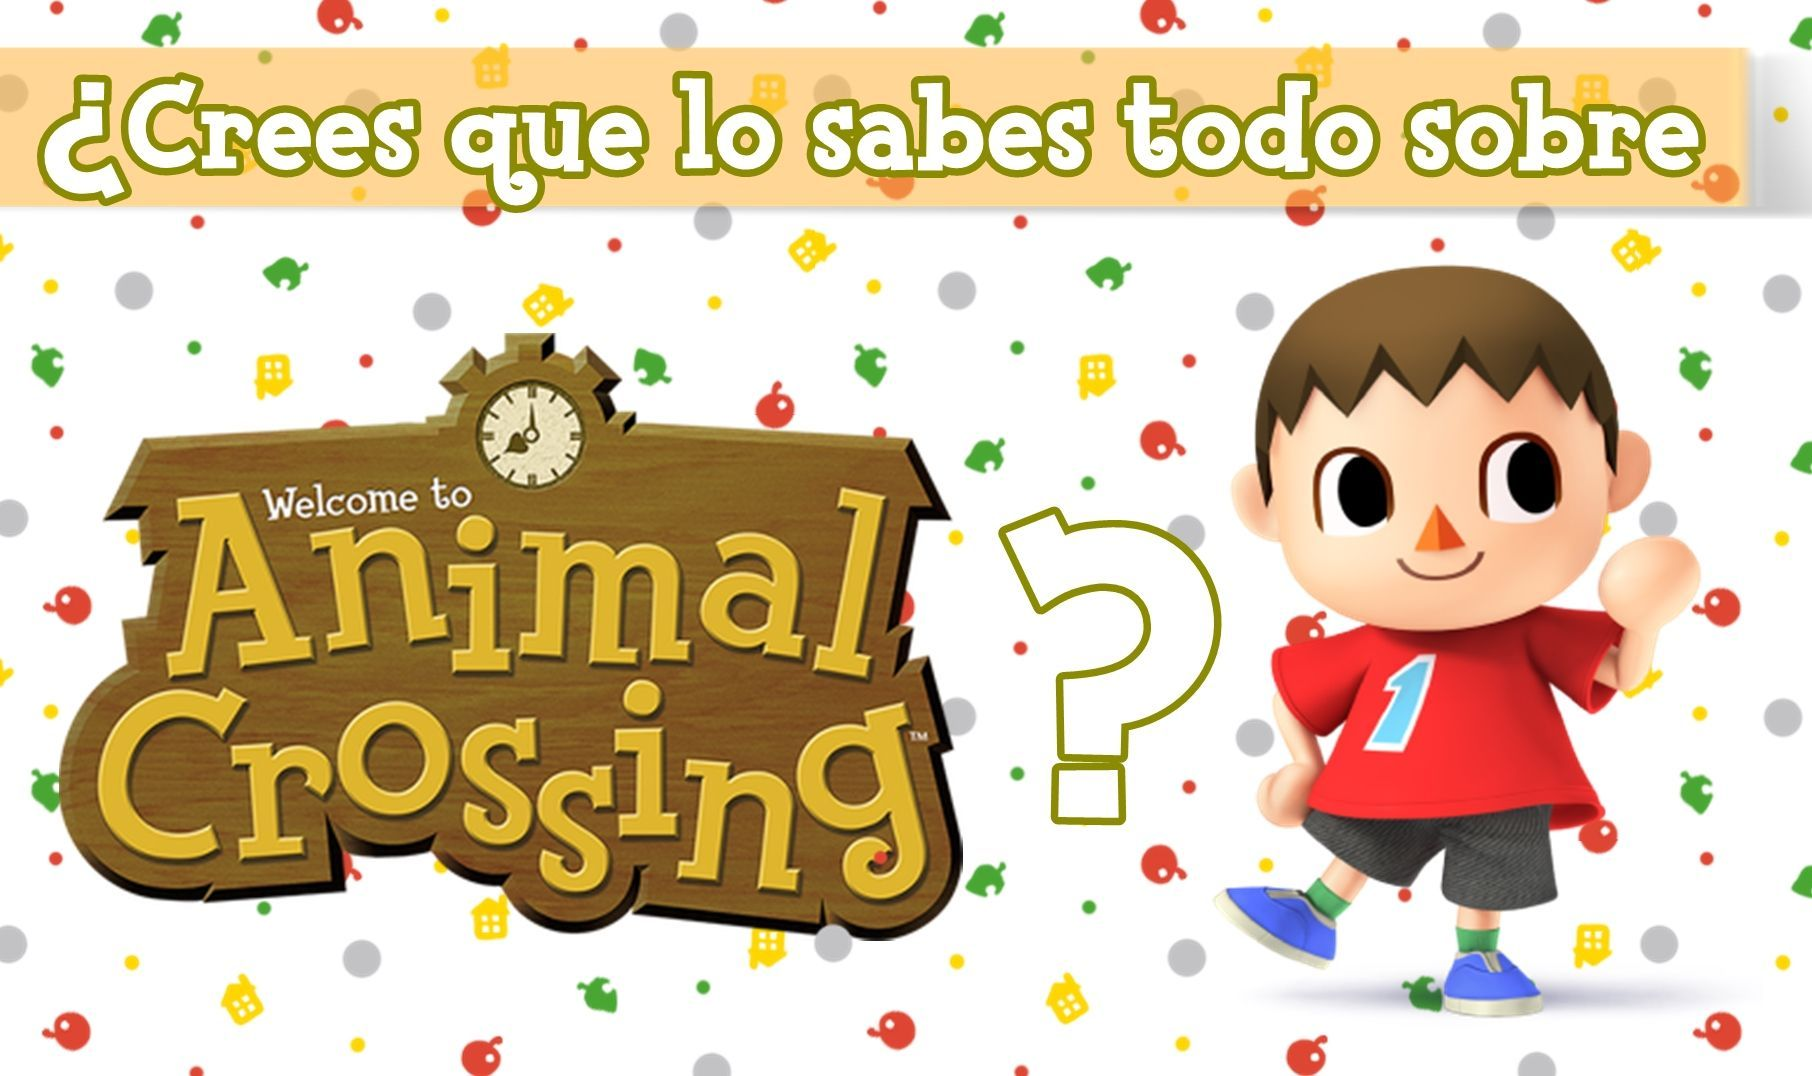 1665 - ¿Crees que lo sabes todo sobre Animal Crossing?